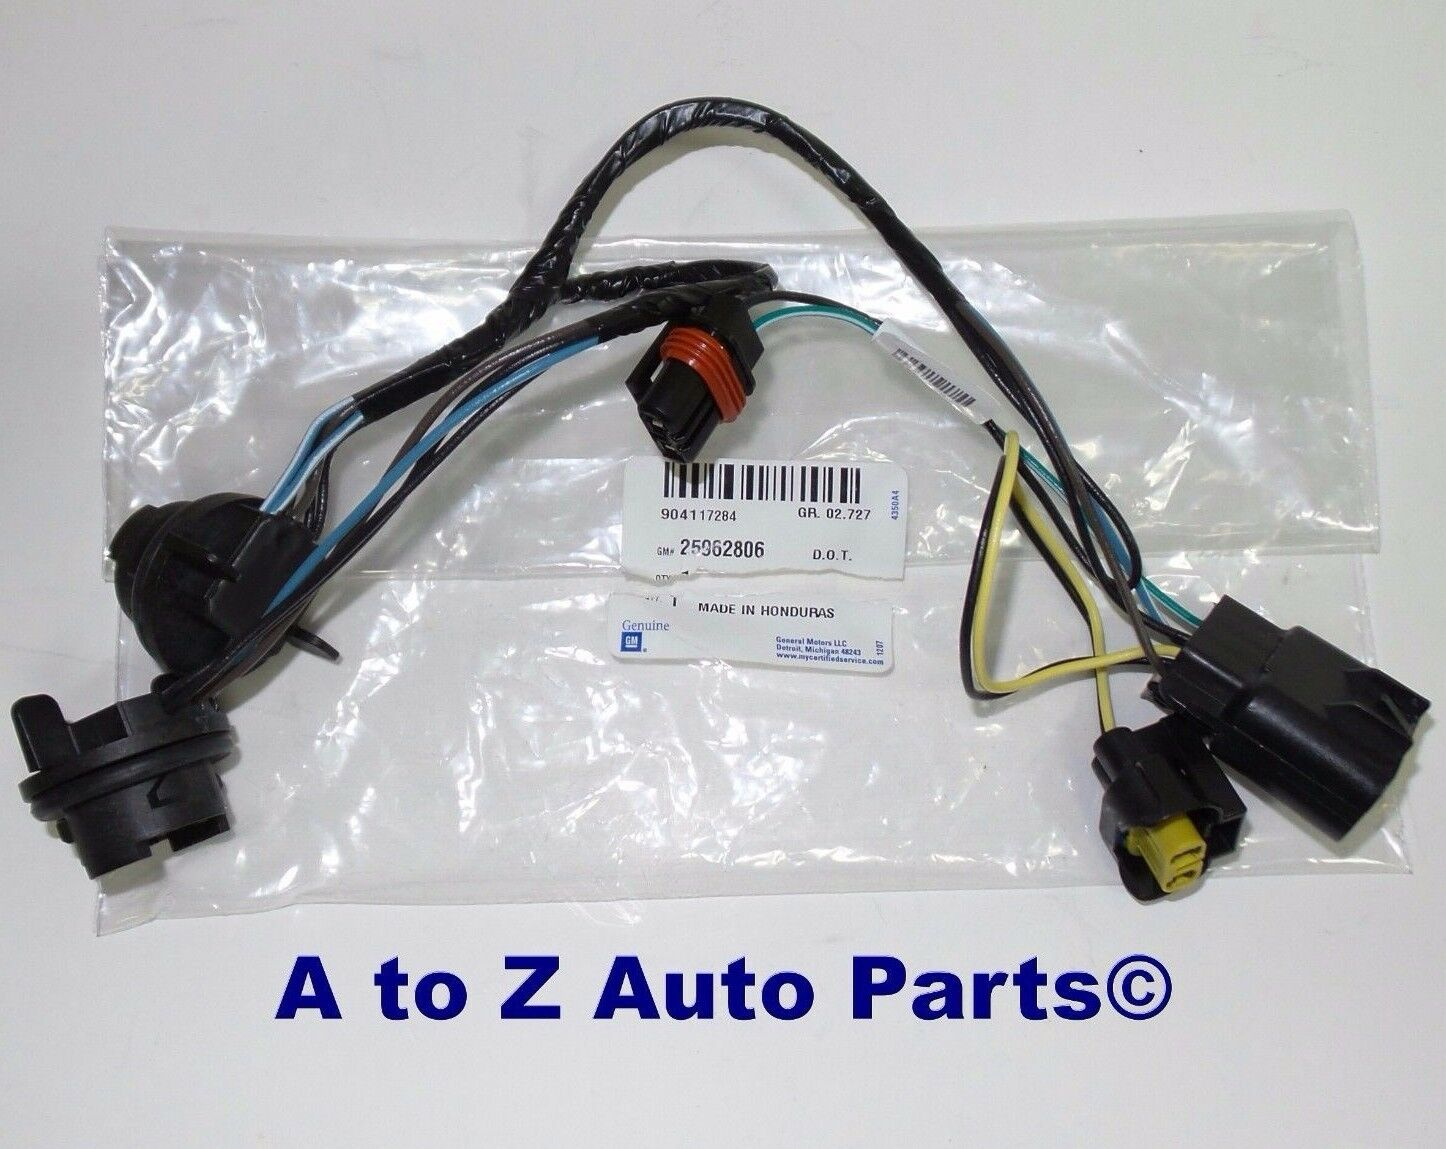 New 2007 2013 Chevrolet Silverado Headlight Wiring Harness Oem Gm 1 Of 3free Shipping See More